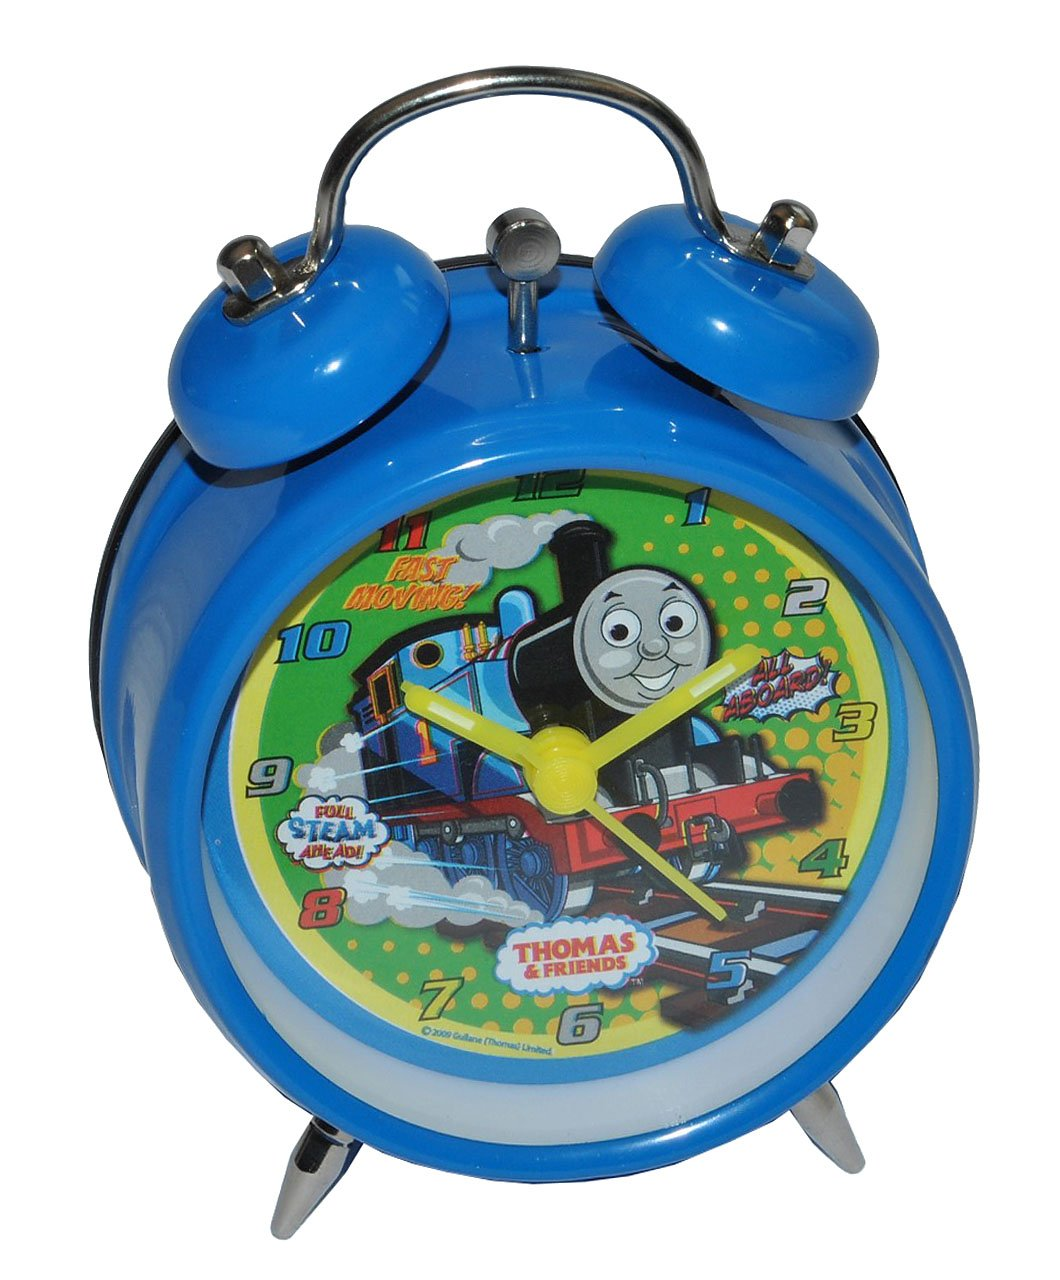 Kinderwecker Thomas die Lokomotive – für Kinder Metall Wecker Analog – Alarm Kinderwecker Metallwecker – Eisenbahn Lok Zug Züge online bestellen